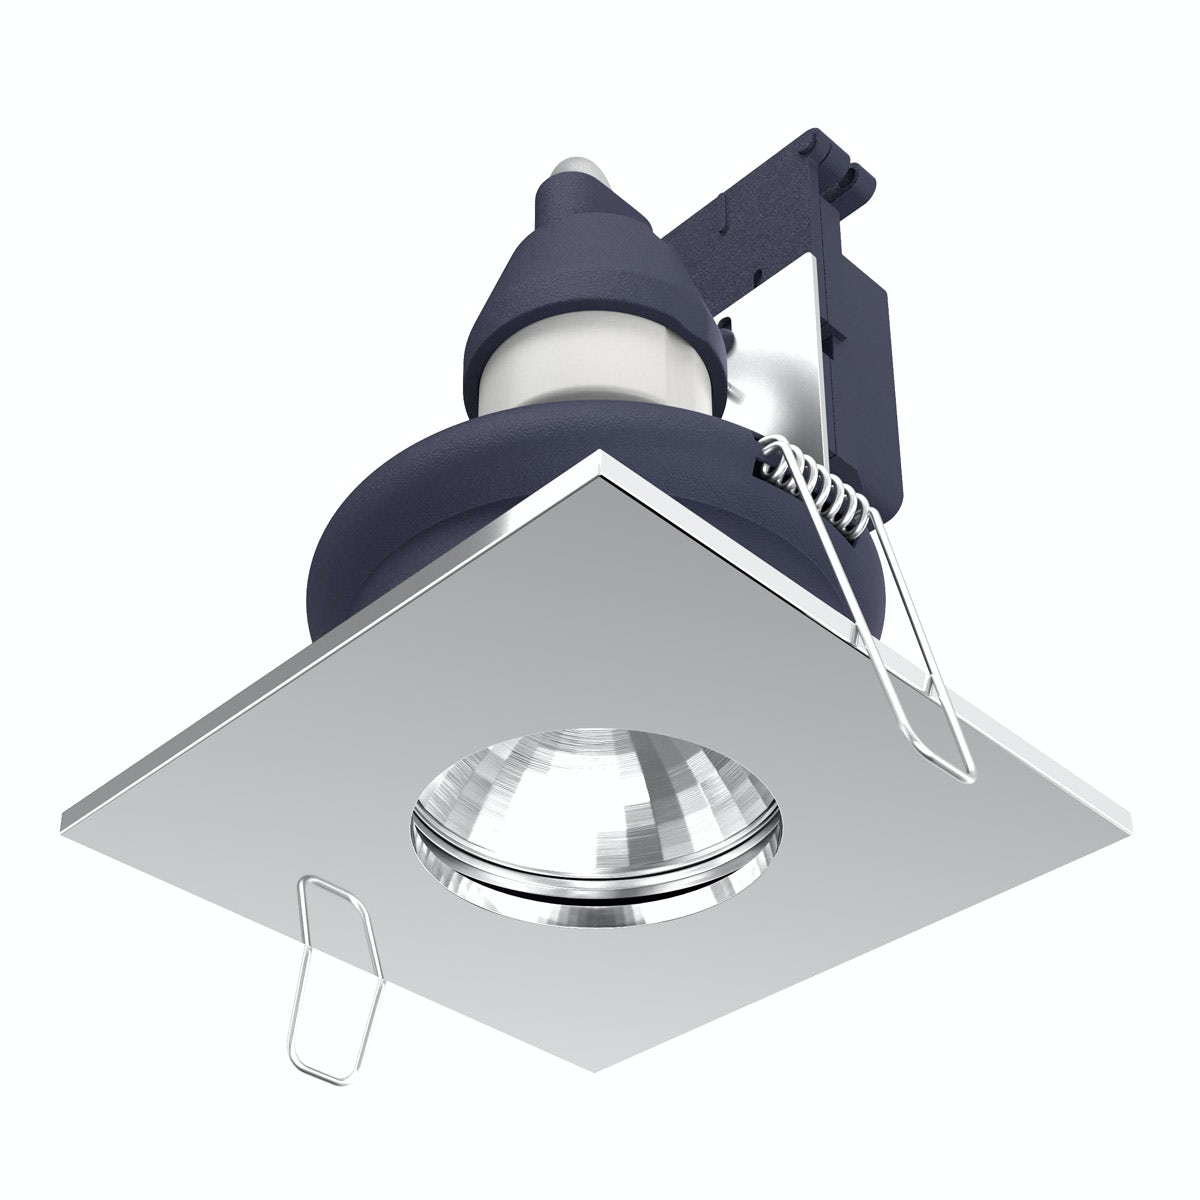 Forum IP65 square downlight in chrome